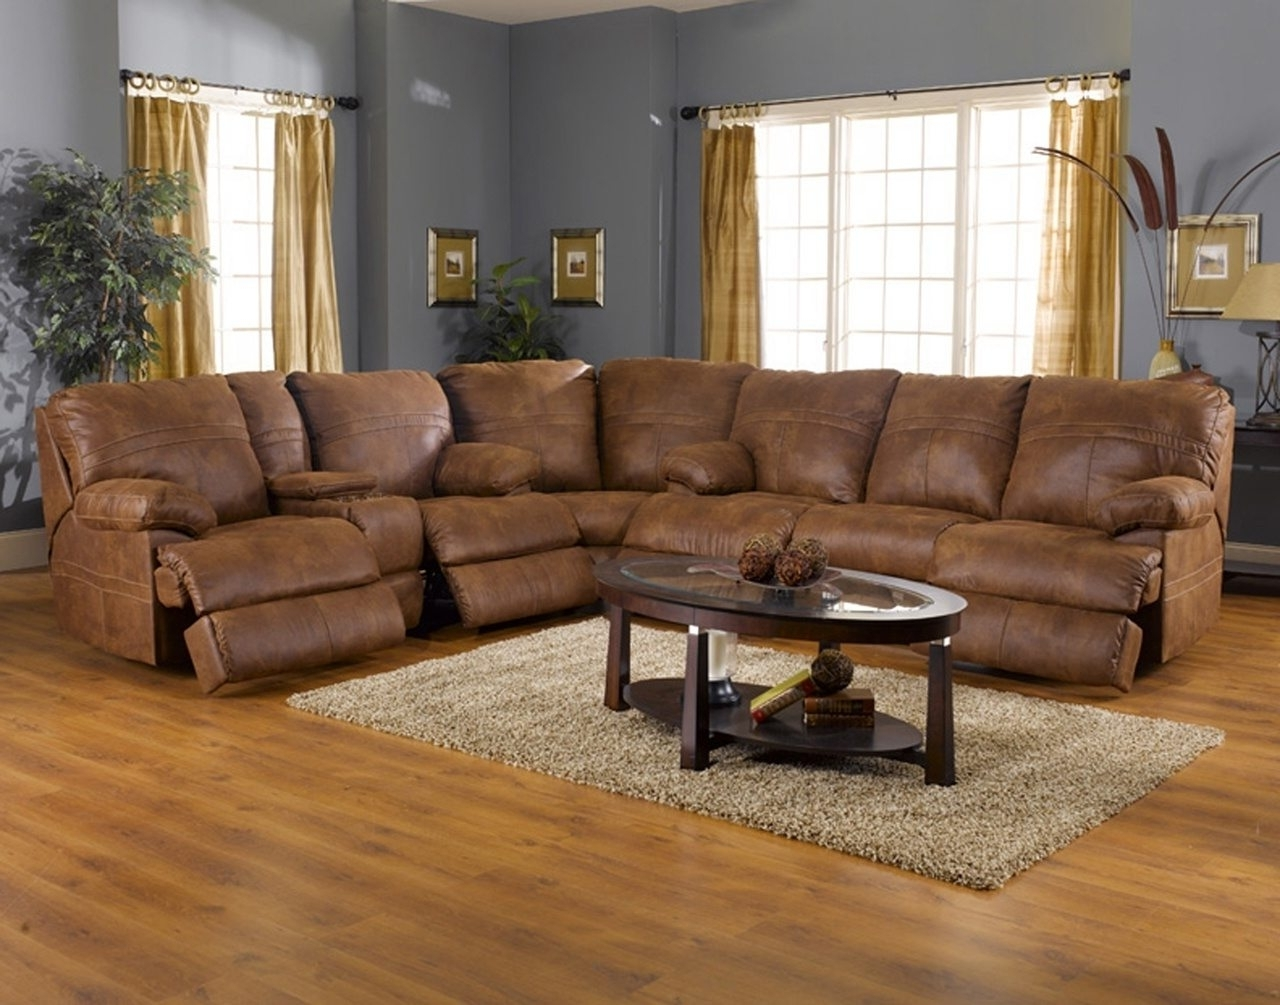 L Shaped Light Brown Leather Reclining Sectional With Oval Coffee Regarding Famous Leather Recliner Sectional Sofas (View 8 of 20)